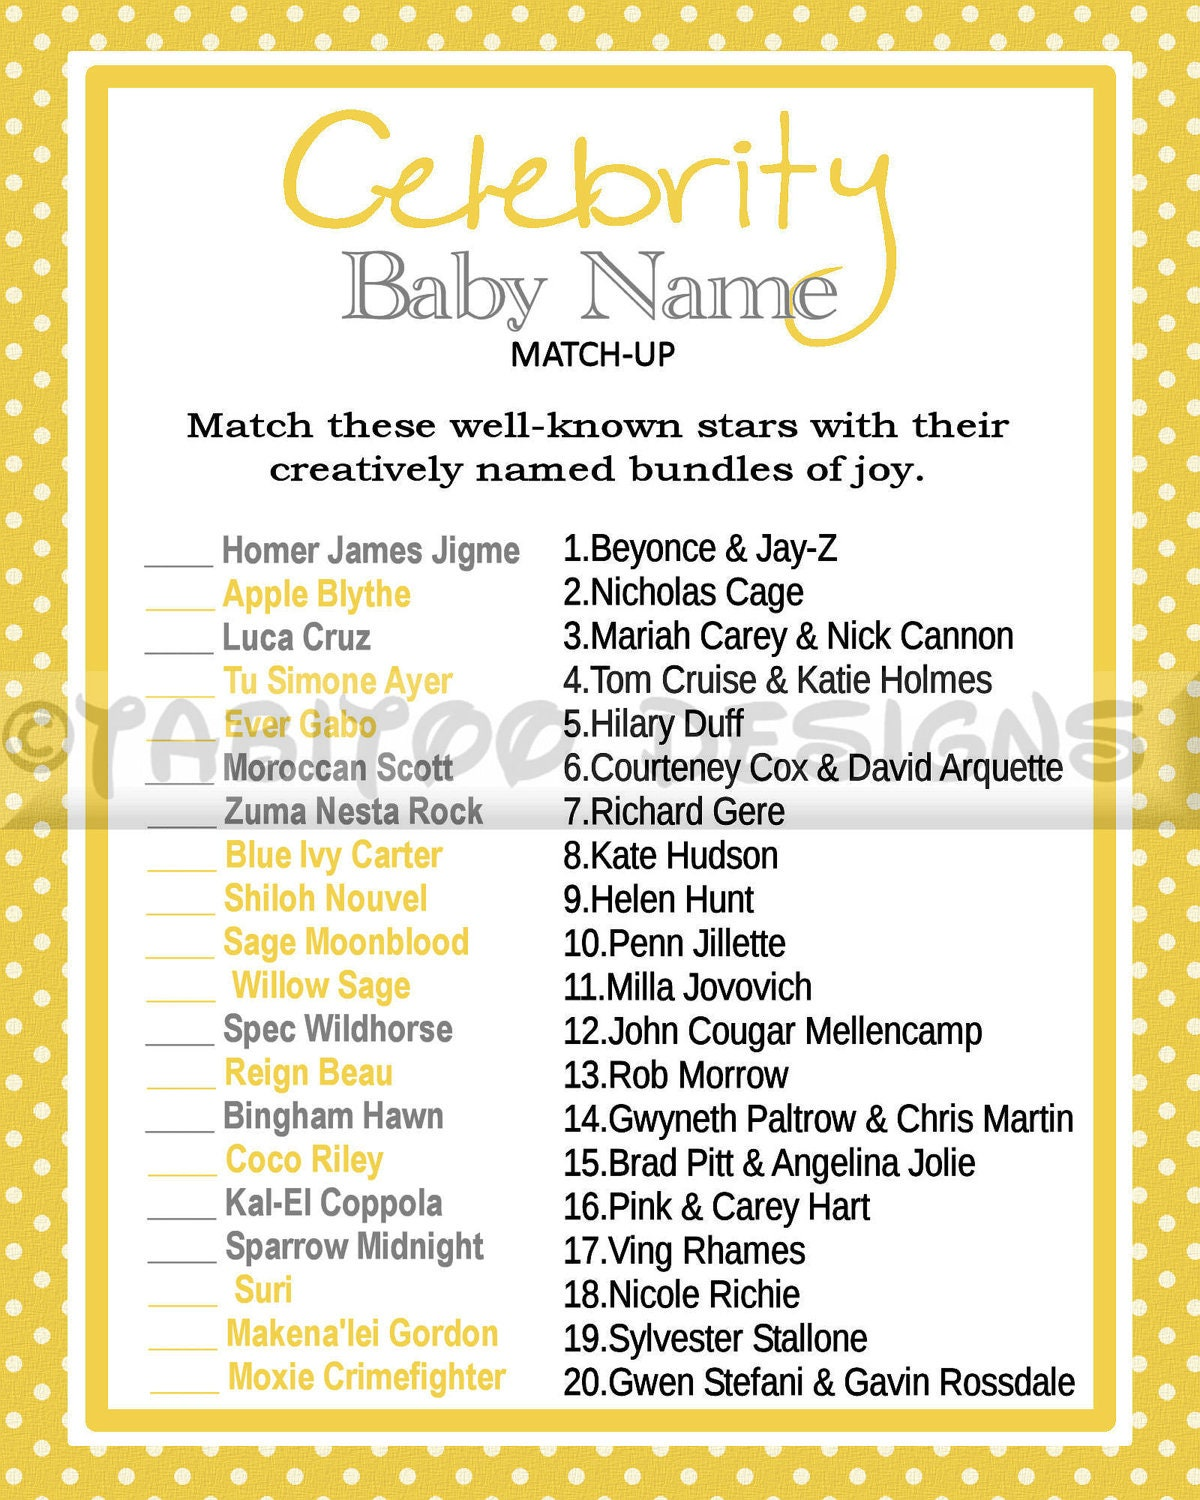 Match Baby's to Their Celebrity Parents Game - Showers of Fun